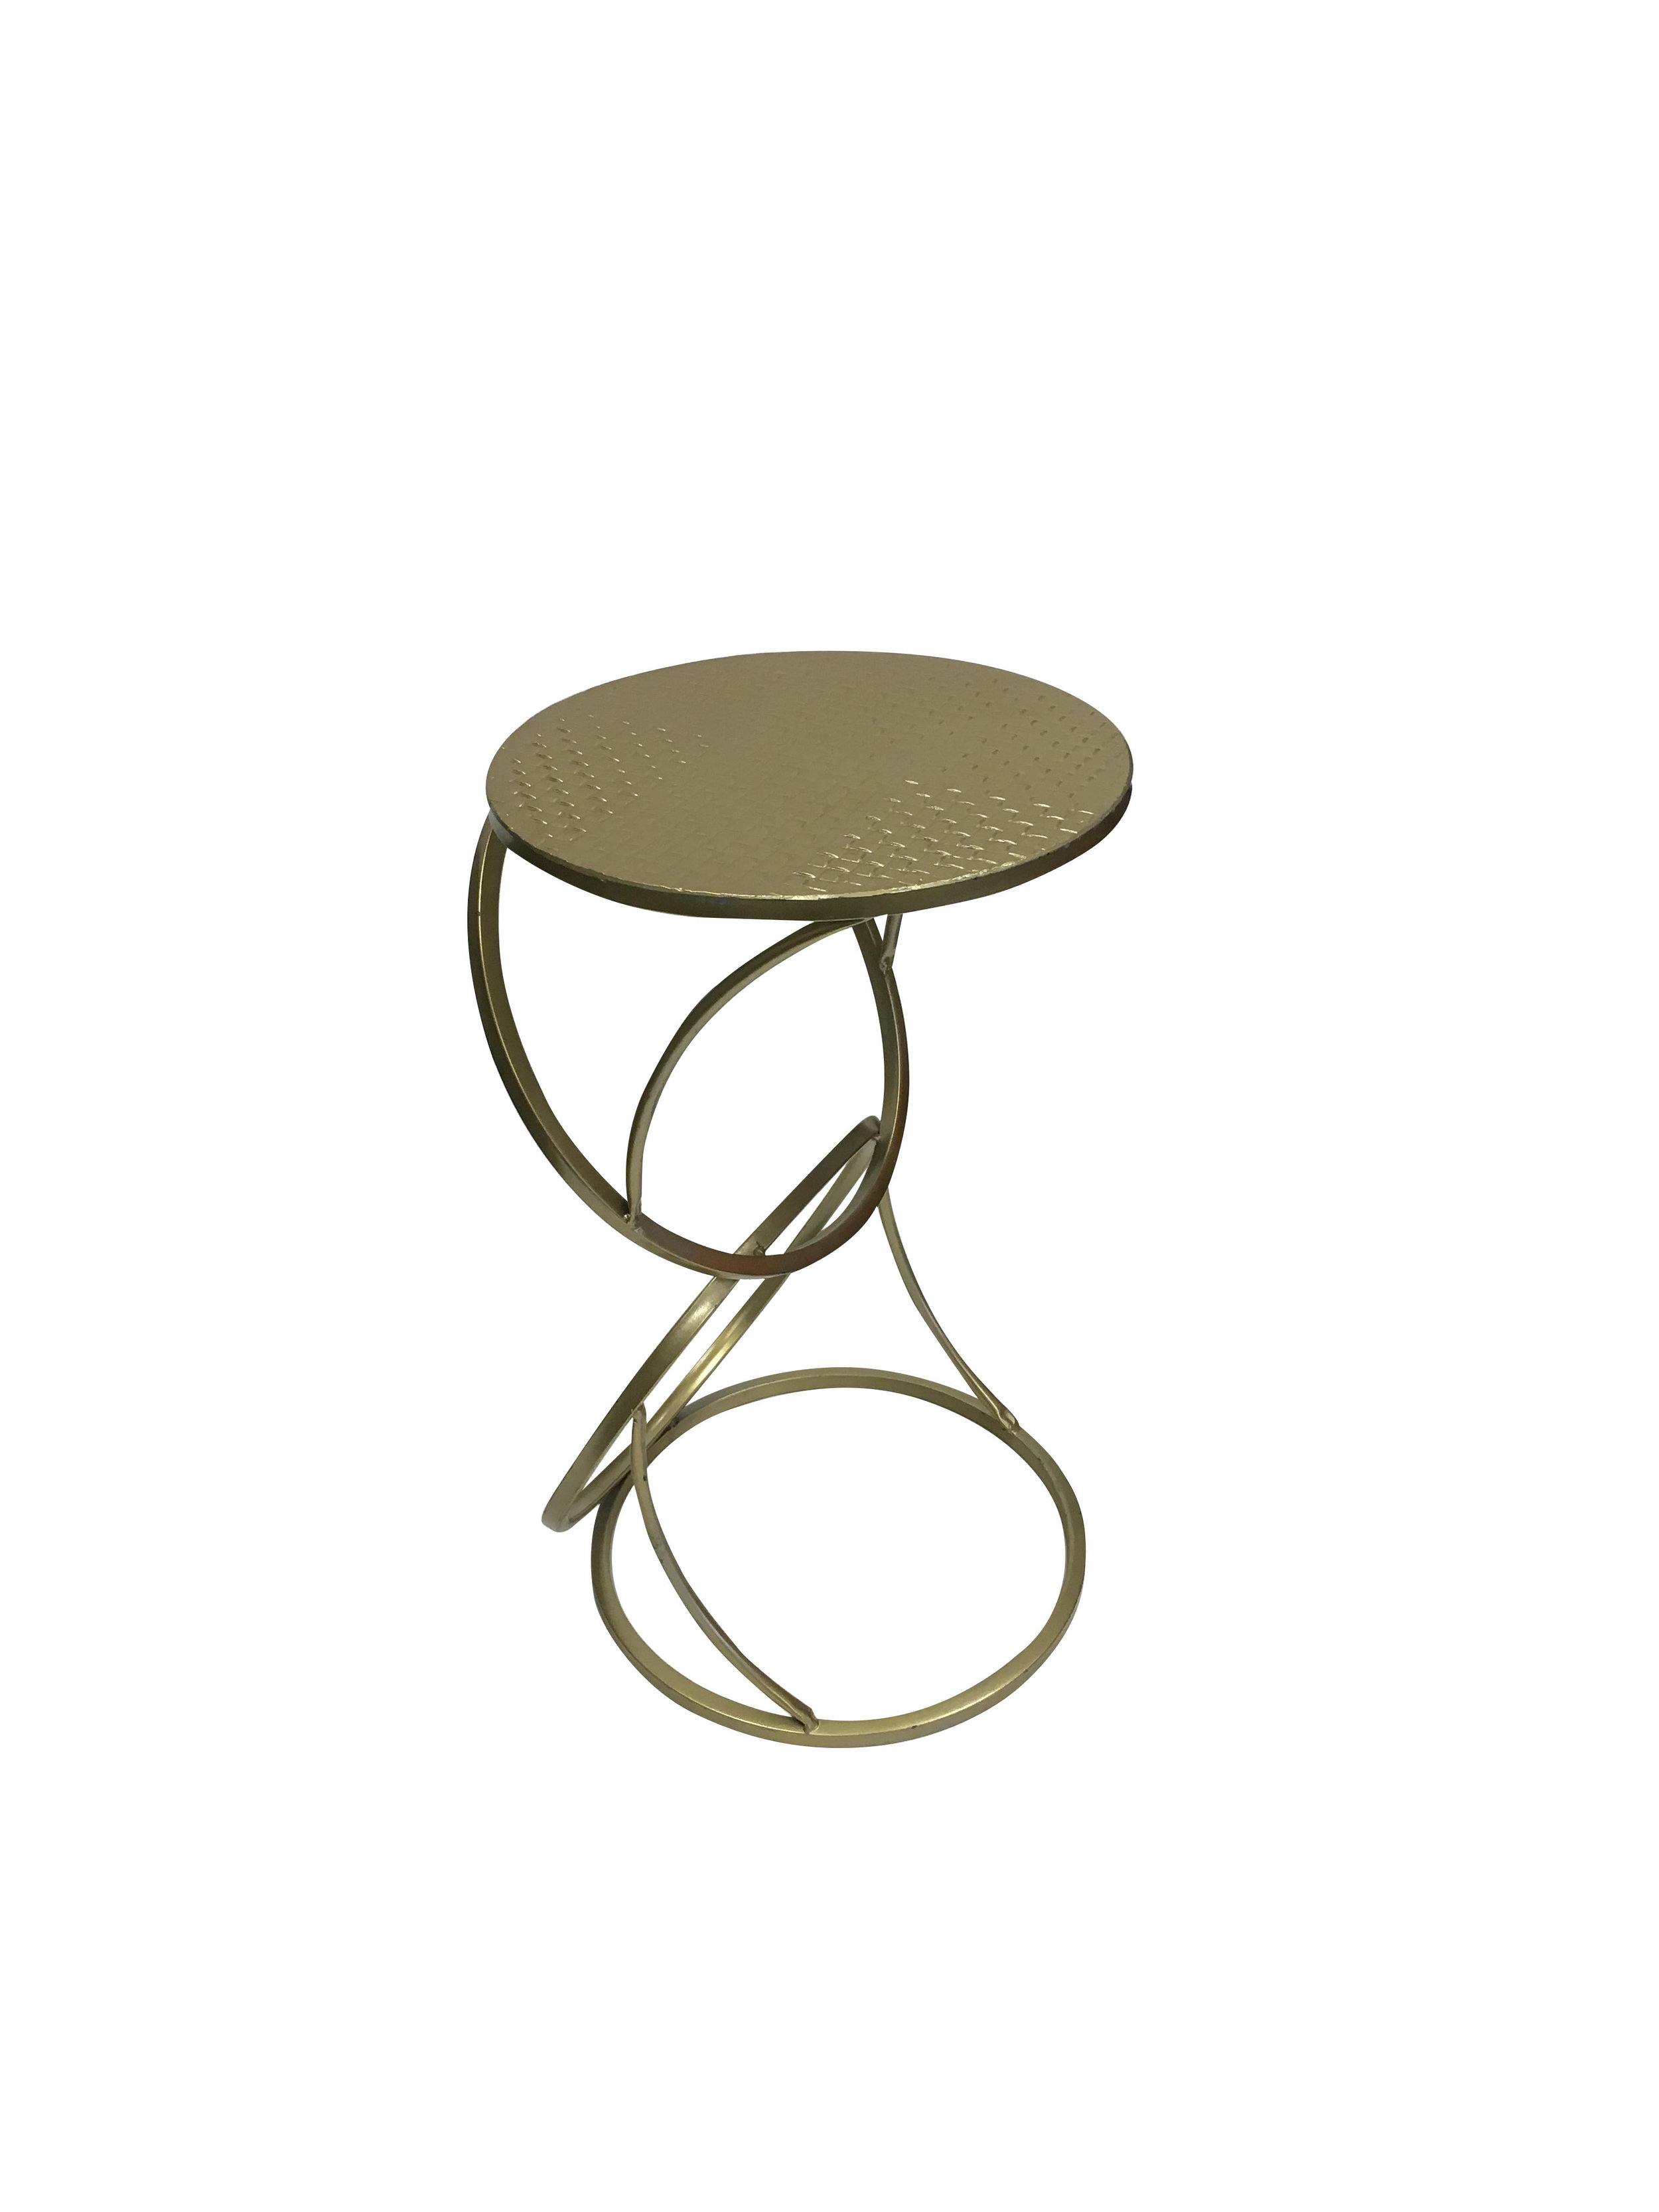 Gold Round Small End Table2.jpg